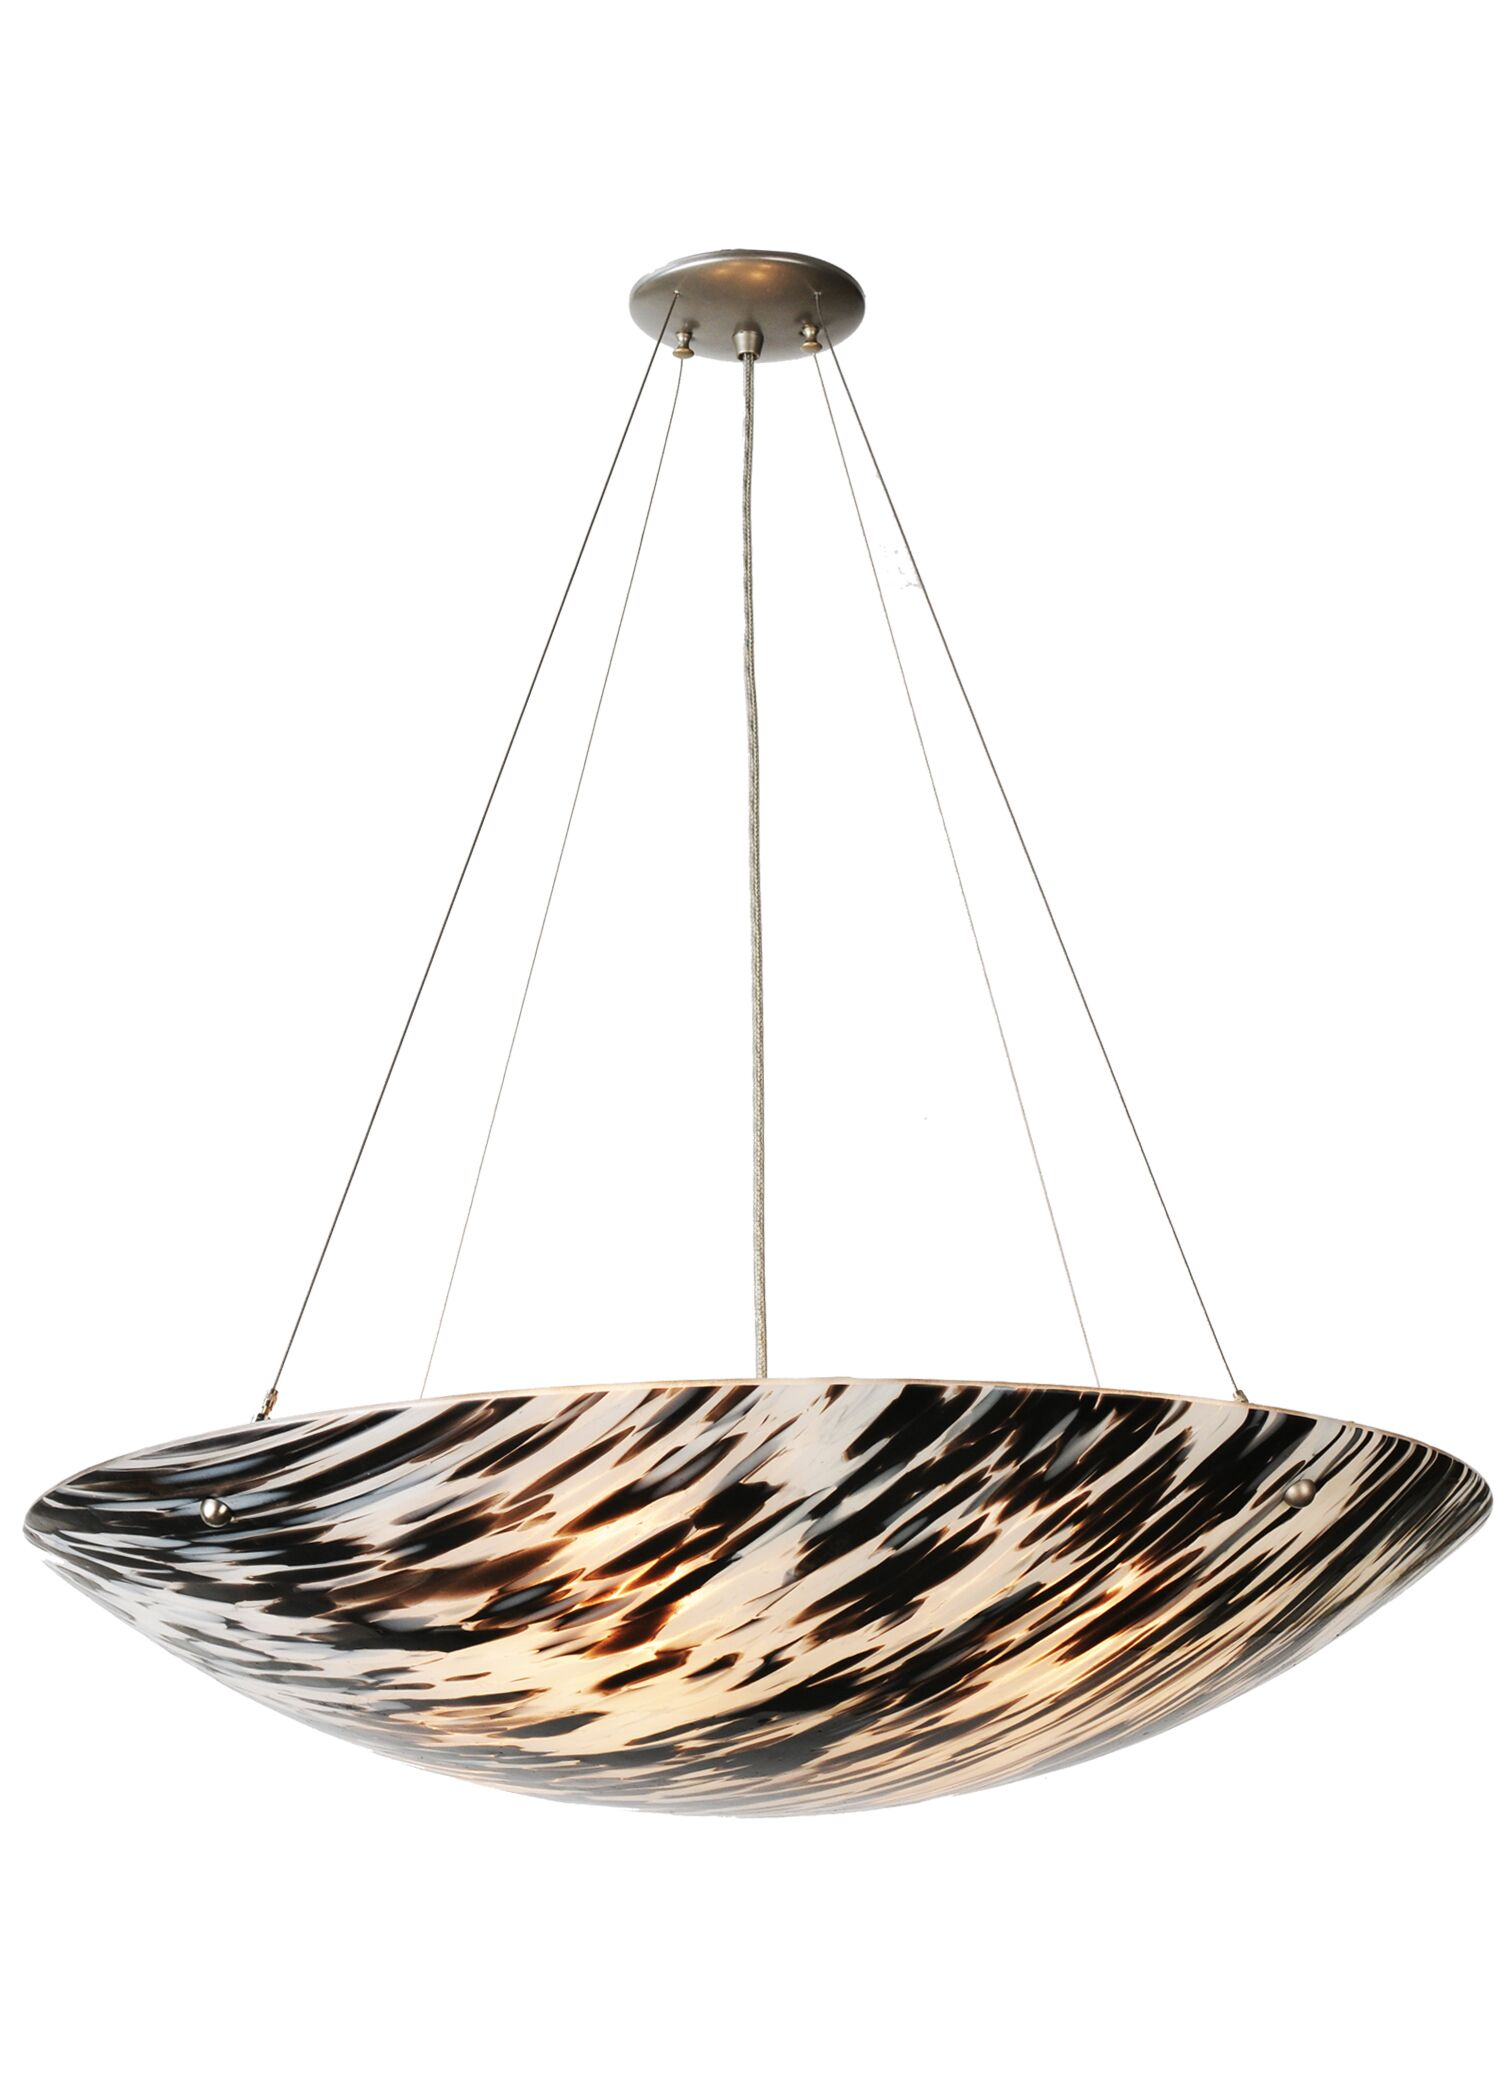 La Perla Nera Fused Glass 4-Light Bowl Pendant